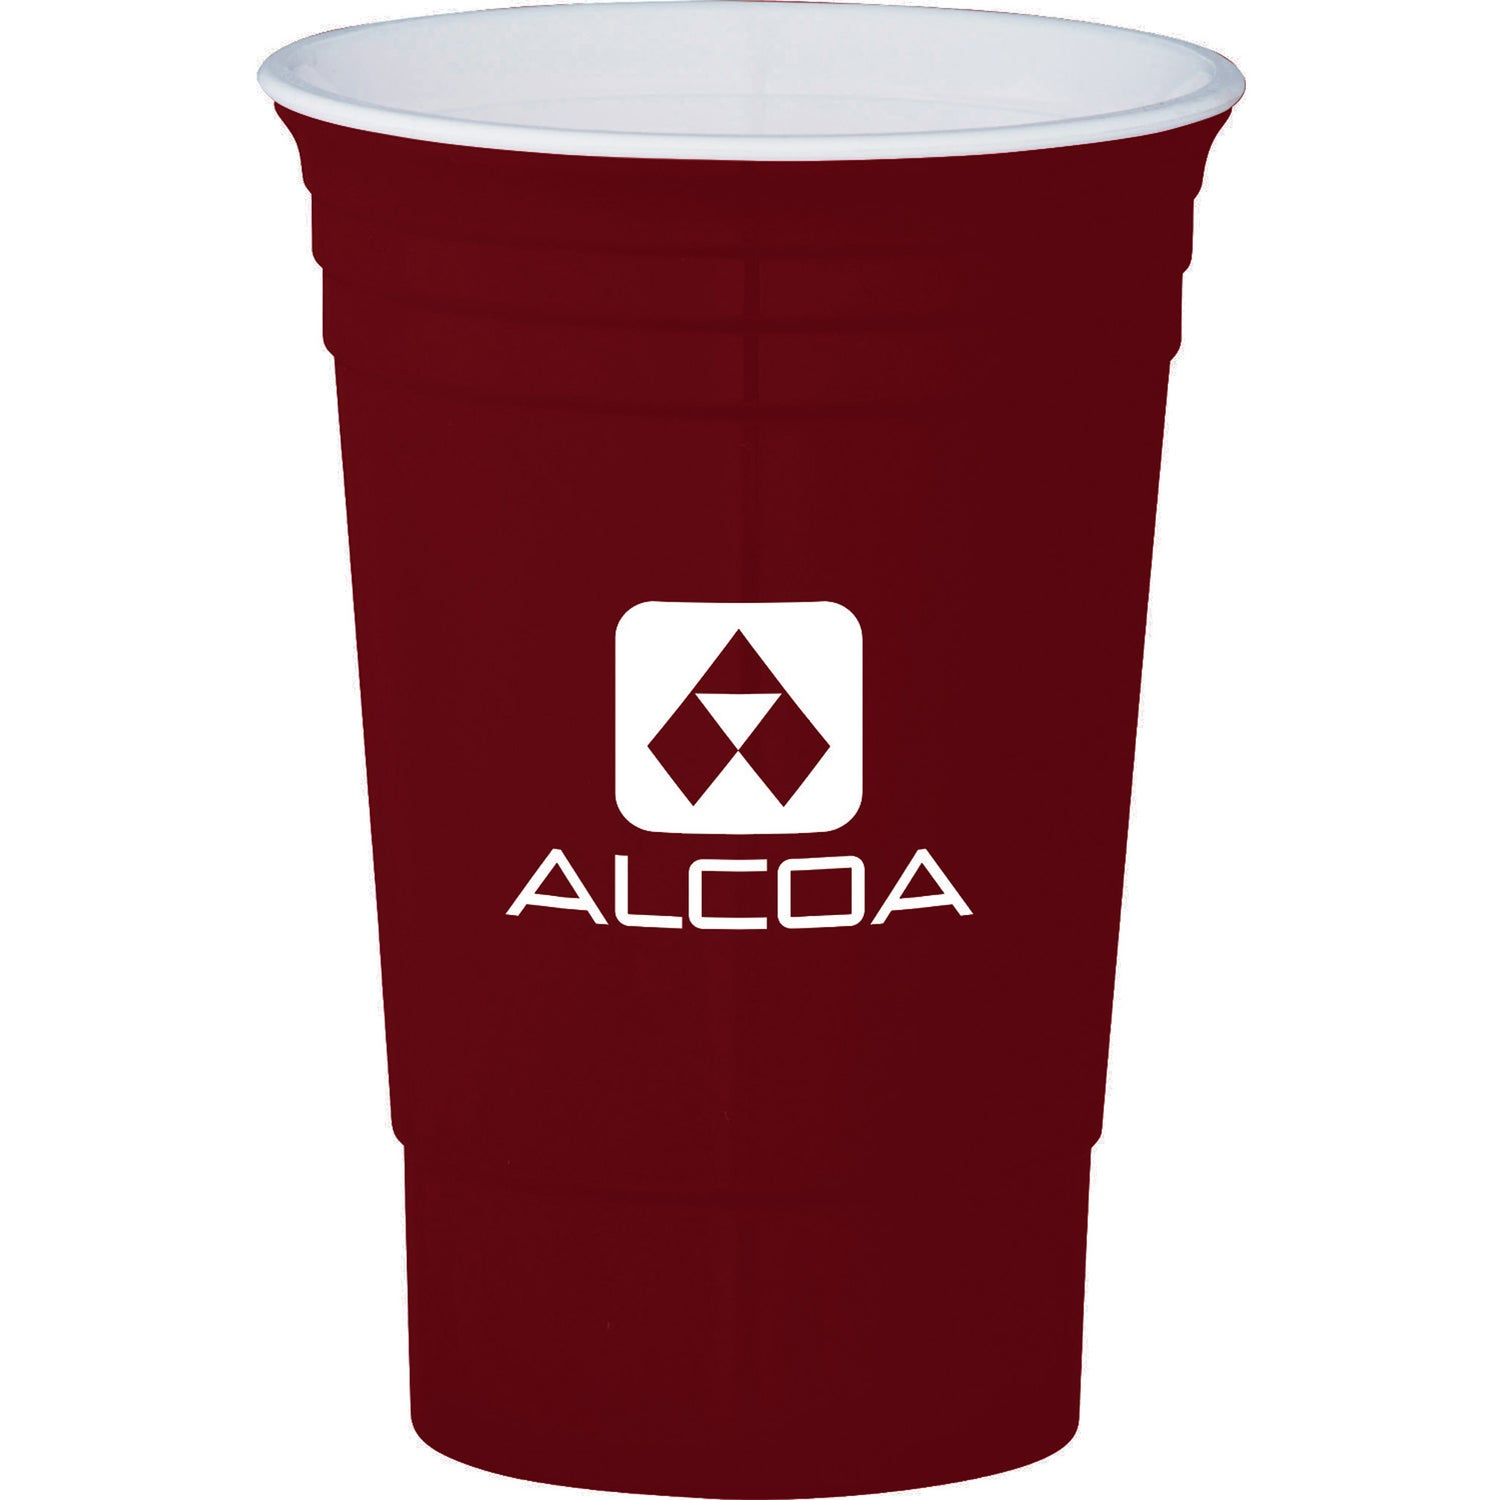 The Party Cup (16 Oz.)